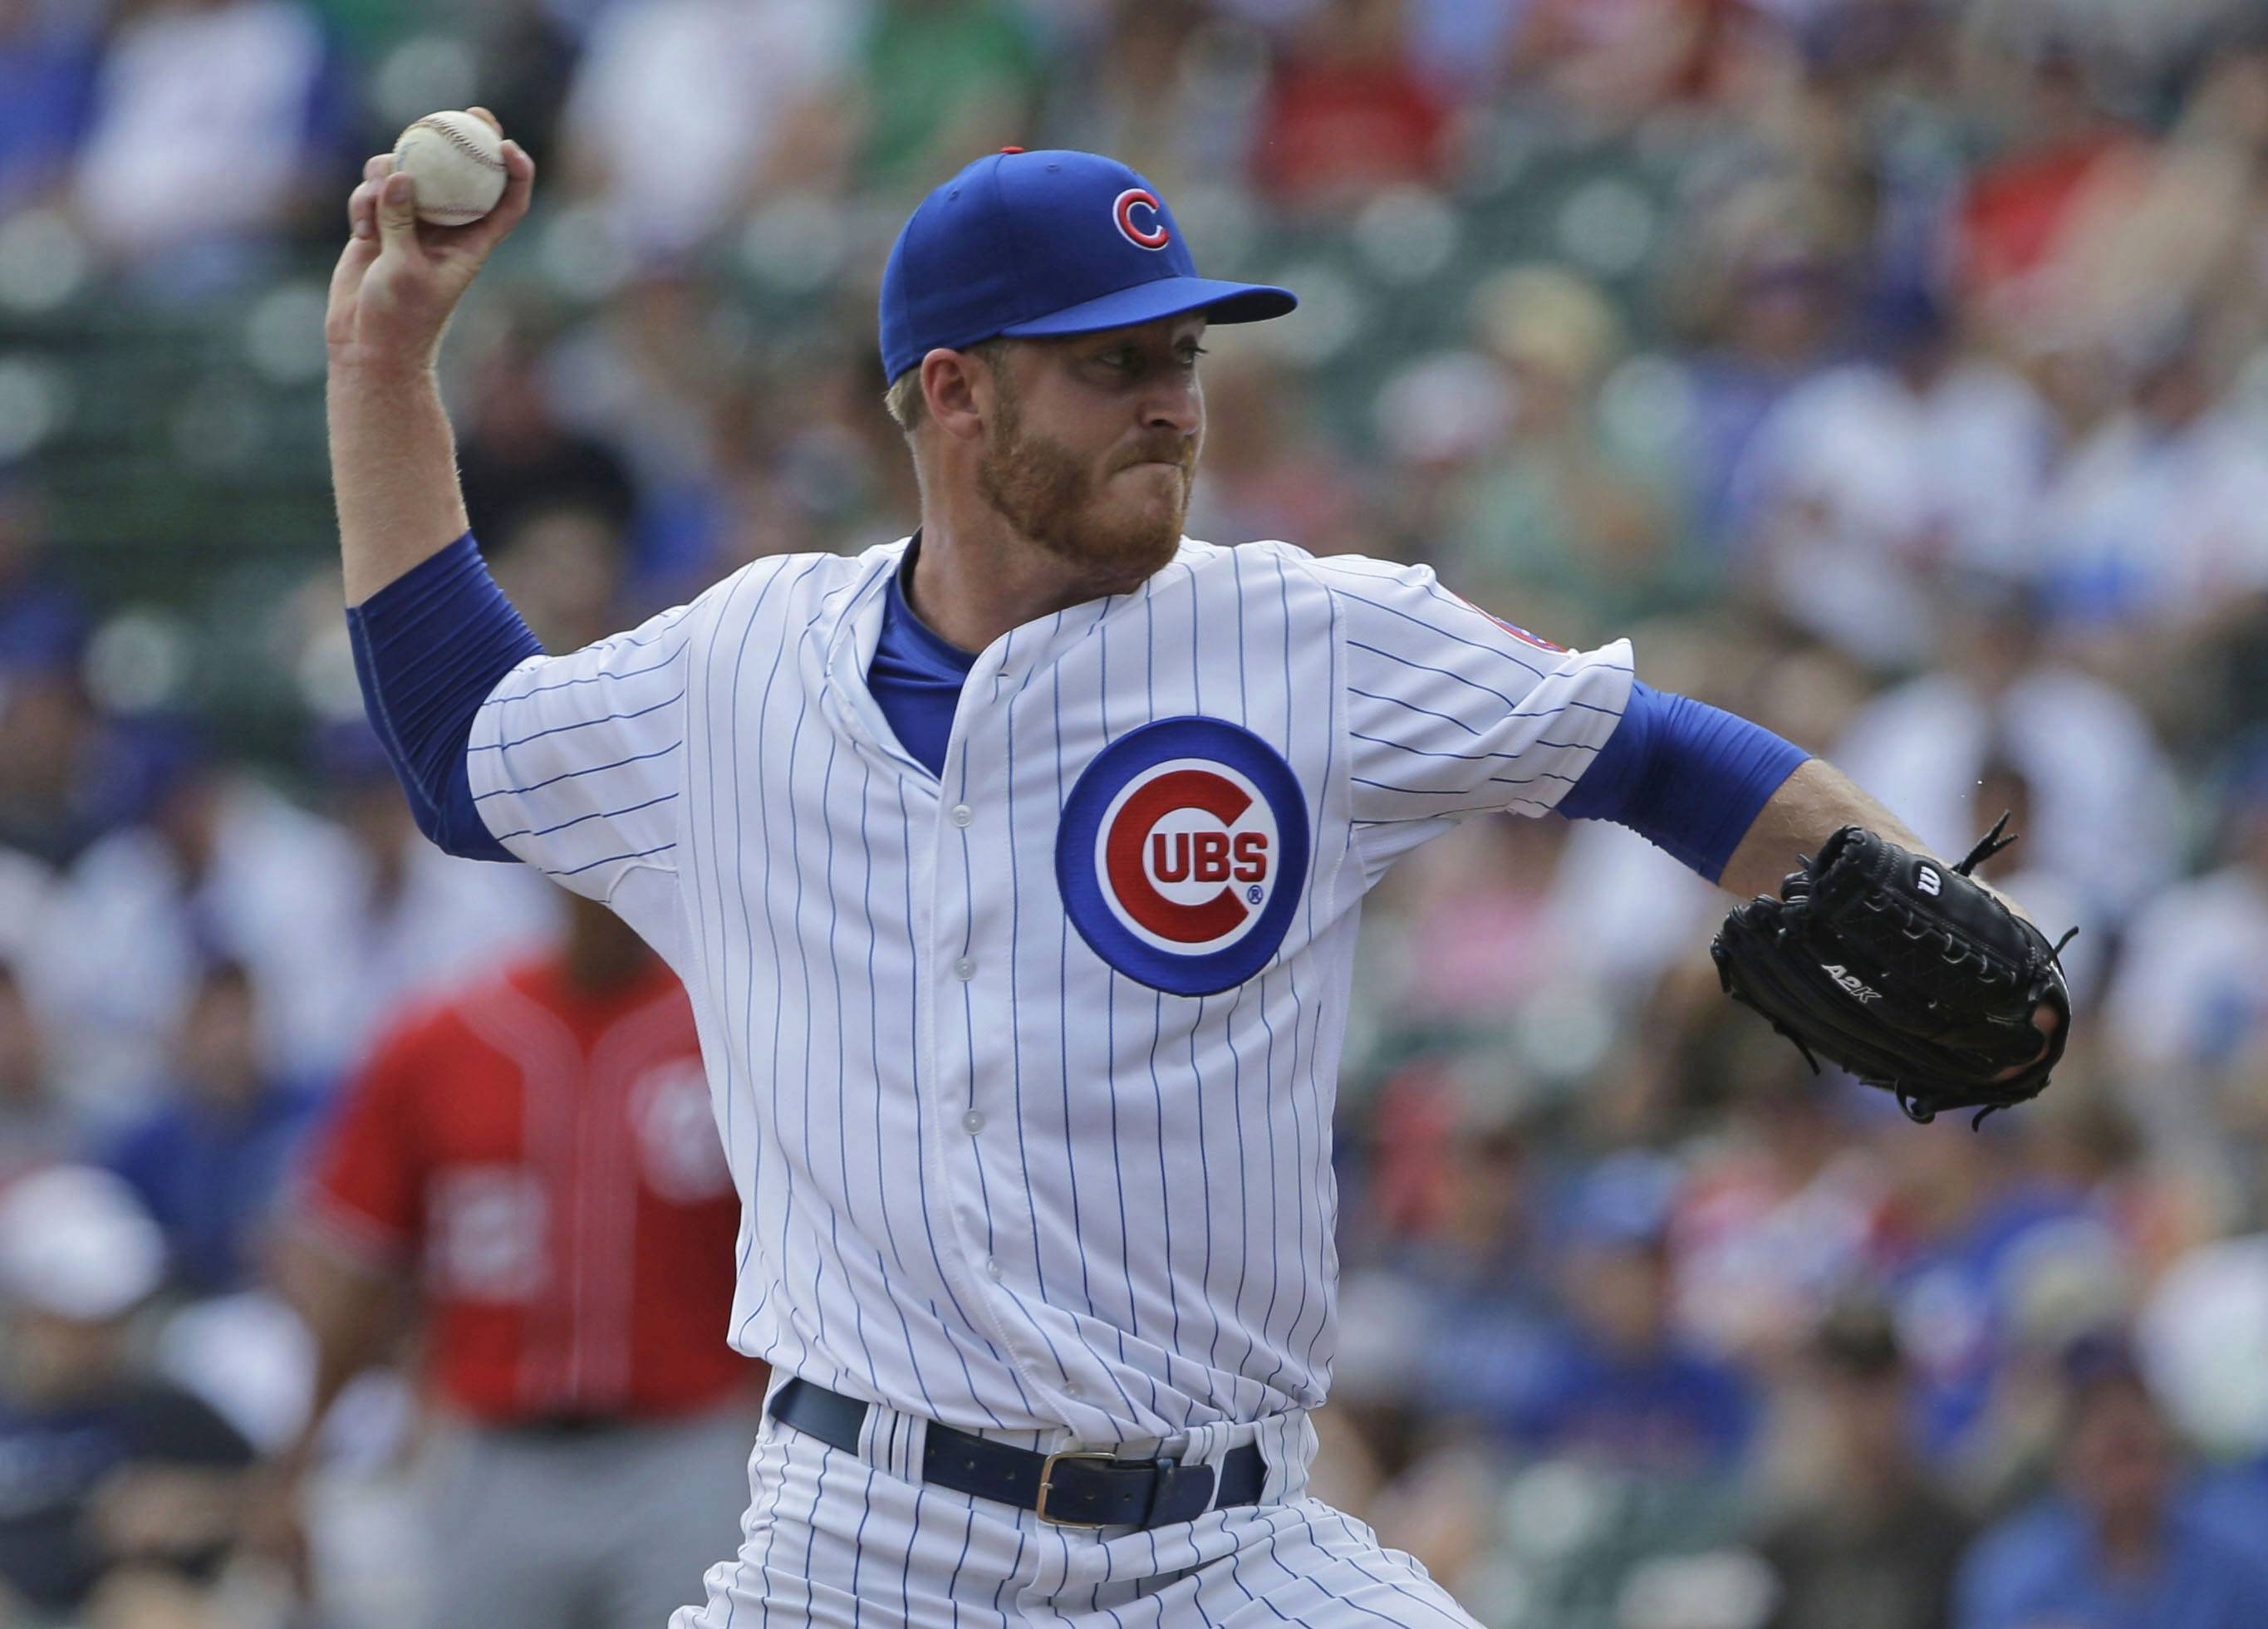 Dallas Beeler allowed no earned runs in his major-league debut Saturday at Wrigley Field.